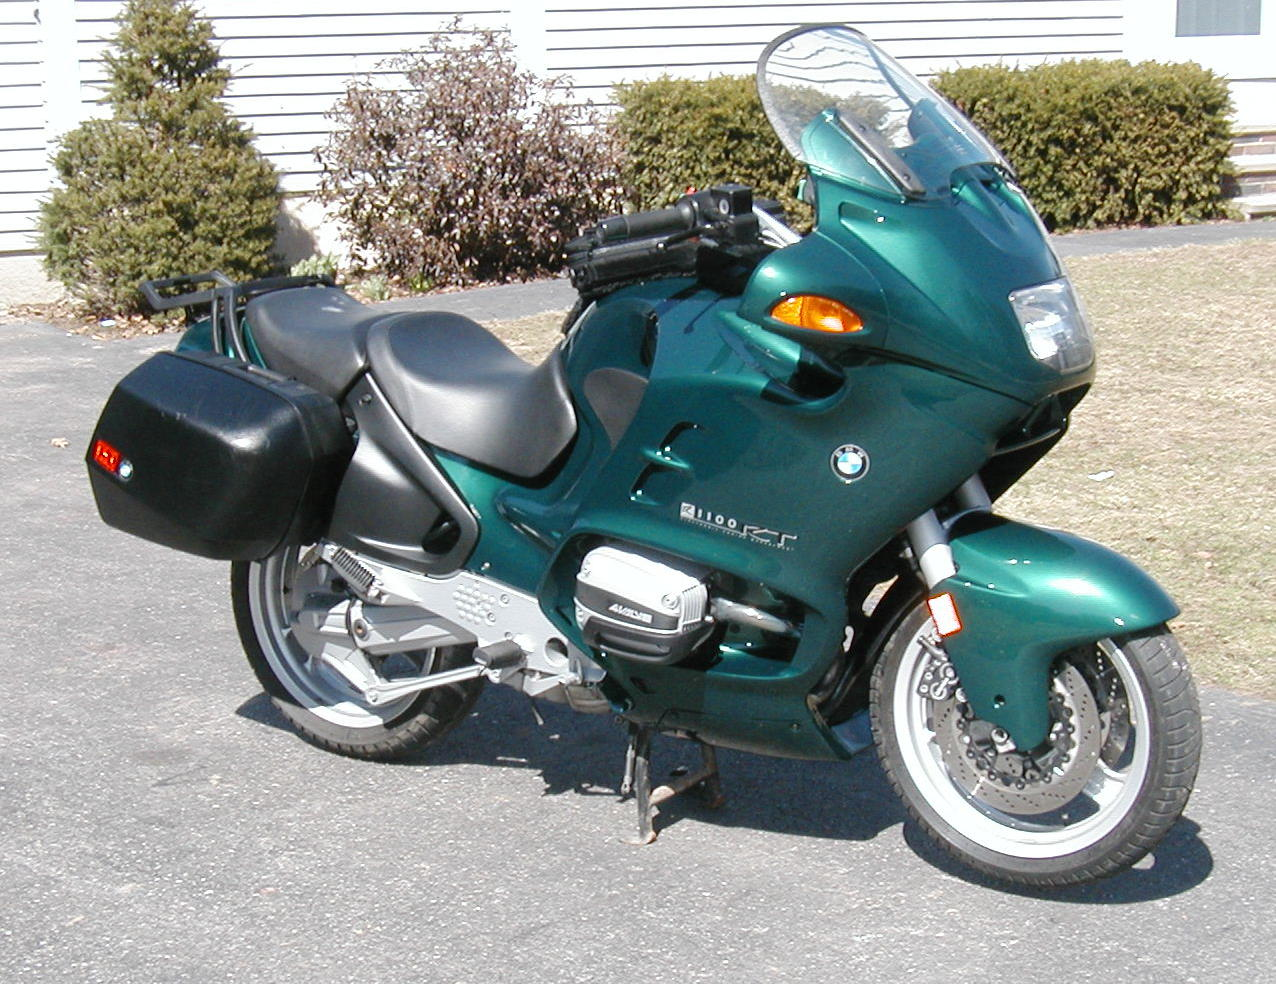 BMW R1100RT 1999 images #6643